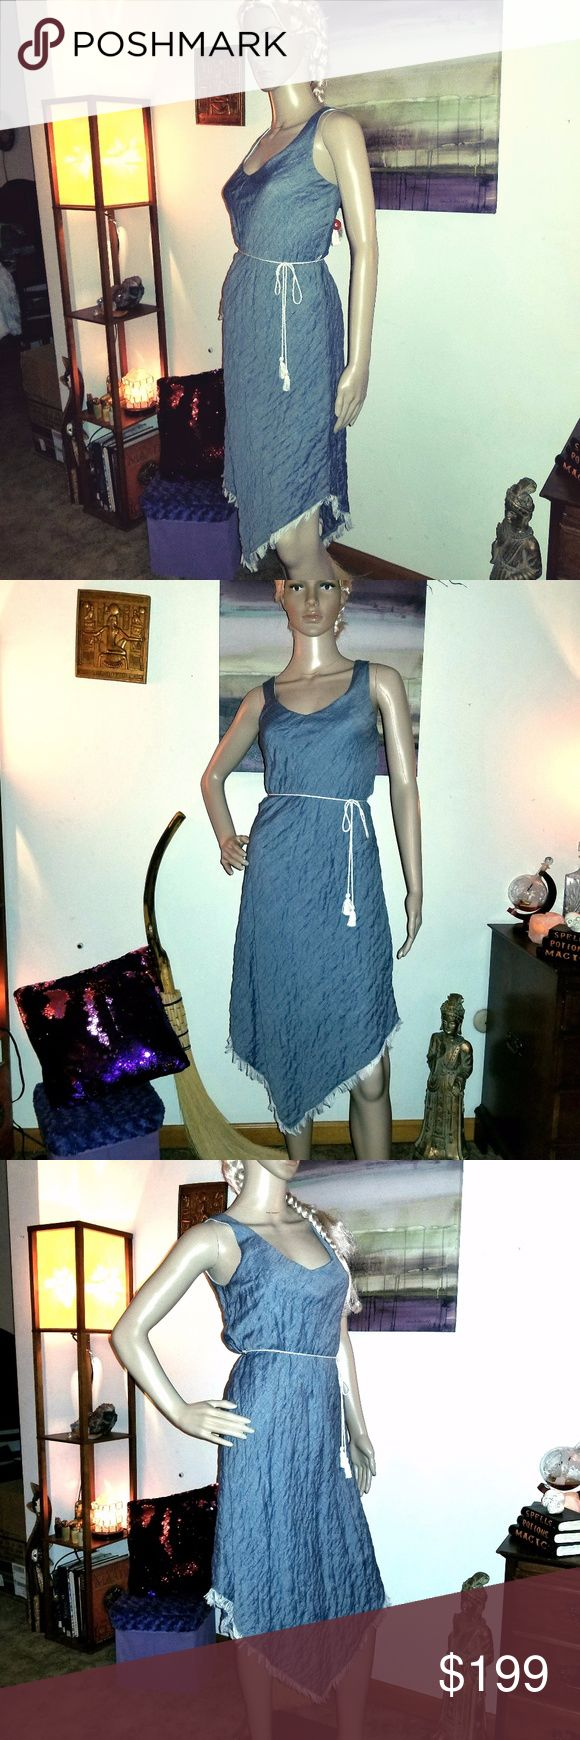 """🎉HP & NWT🎉DREW Indigo Asymmetrical Krista Dress 🎉HP - 9/25/17🎉  ☕This fantastic piece by DREW has a gorgeous, """"puckered"""" texture, white fringe along the asymmetrical hem, & features a gorgeous indigo/denim blue.  100% Cotton w/ 100% Rayon white lining, this dress has a fitted top/bodice w/ a matching white rope belt & drapes down below the knee in the front & back in a playful cut.  Pair w/ cropped jacket & booties for a stunning, high-end look.🌟NYC Designer Exclusive 2017🌟- designs…"""